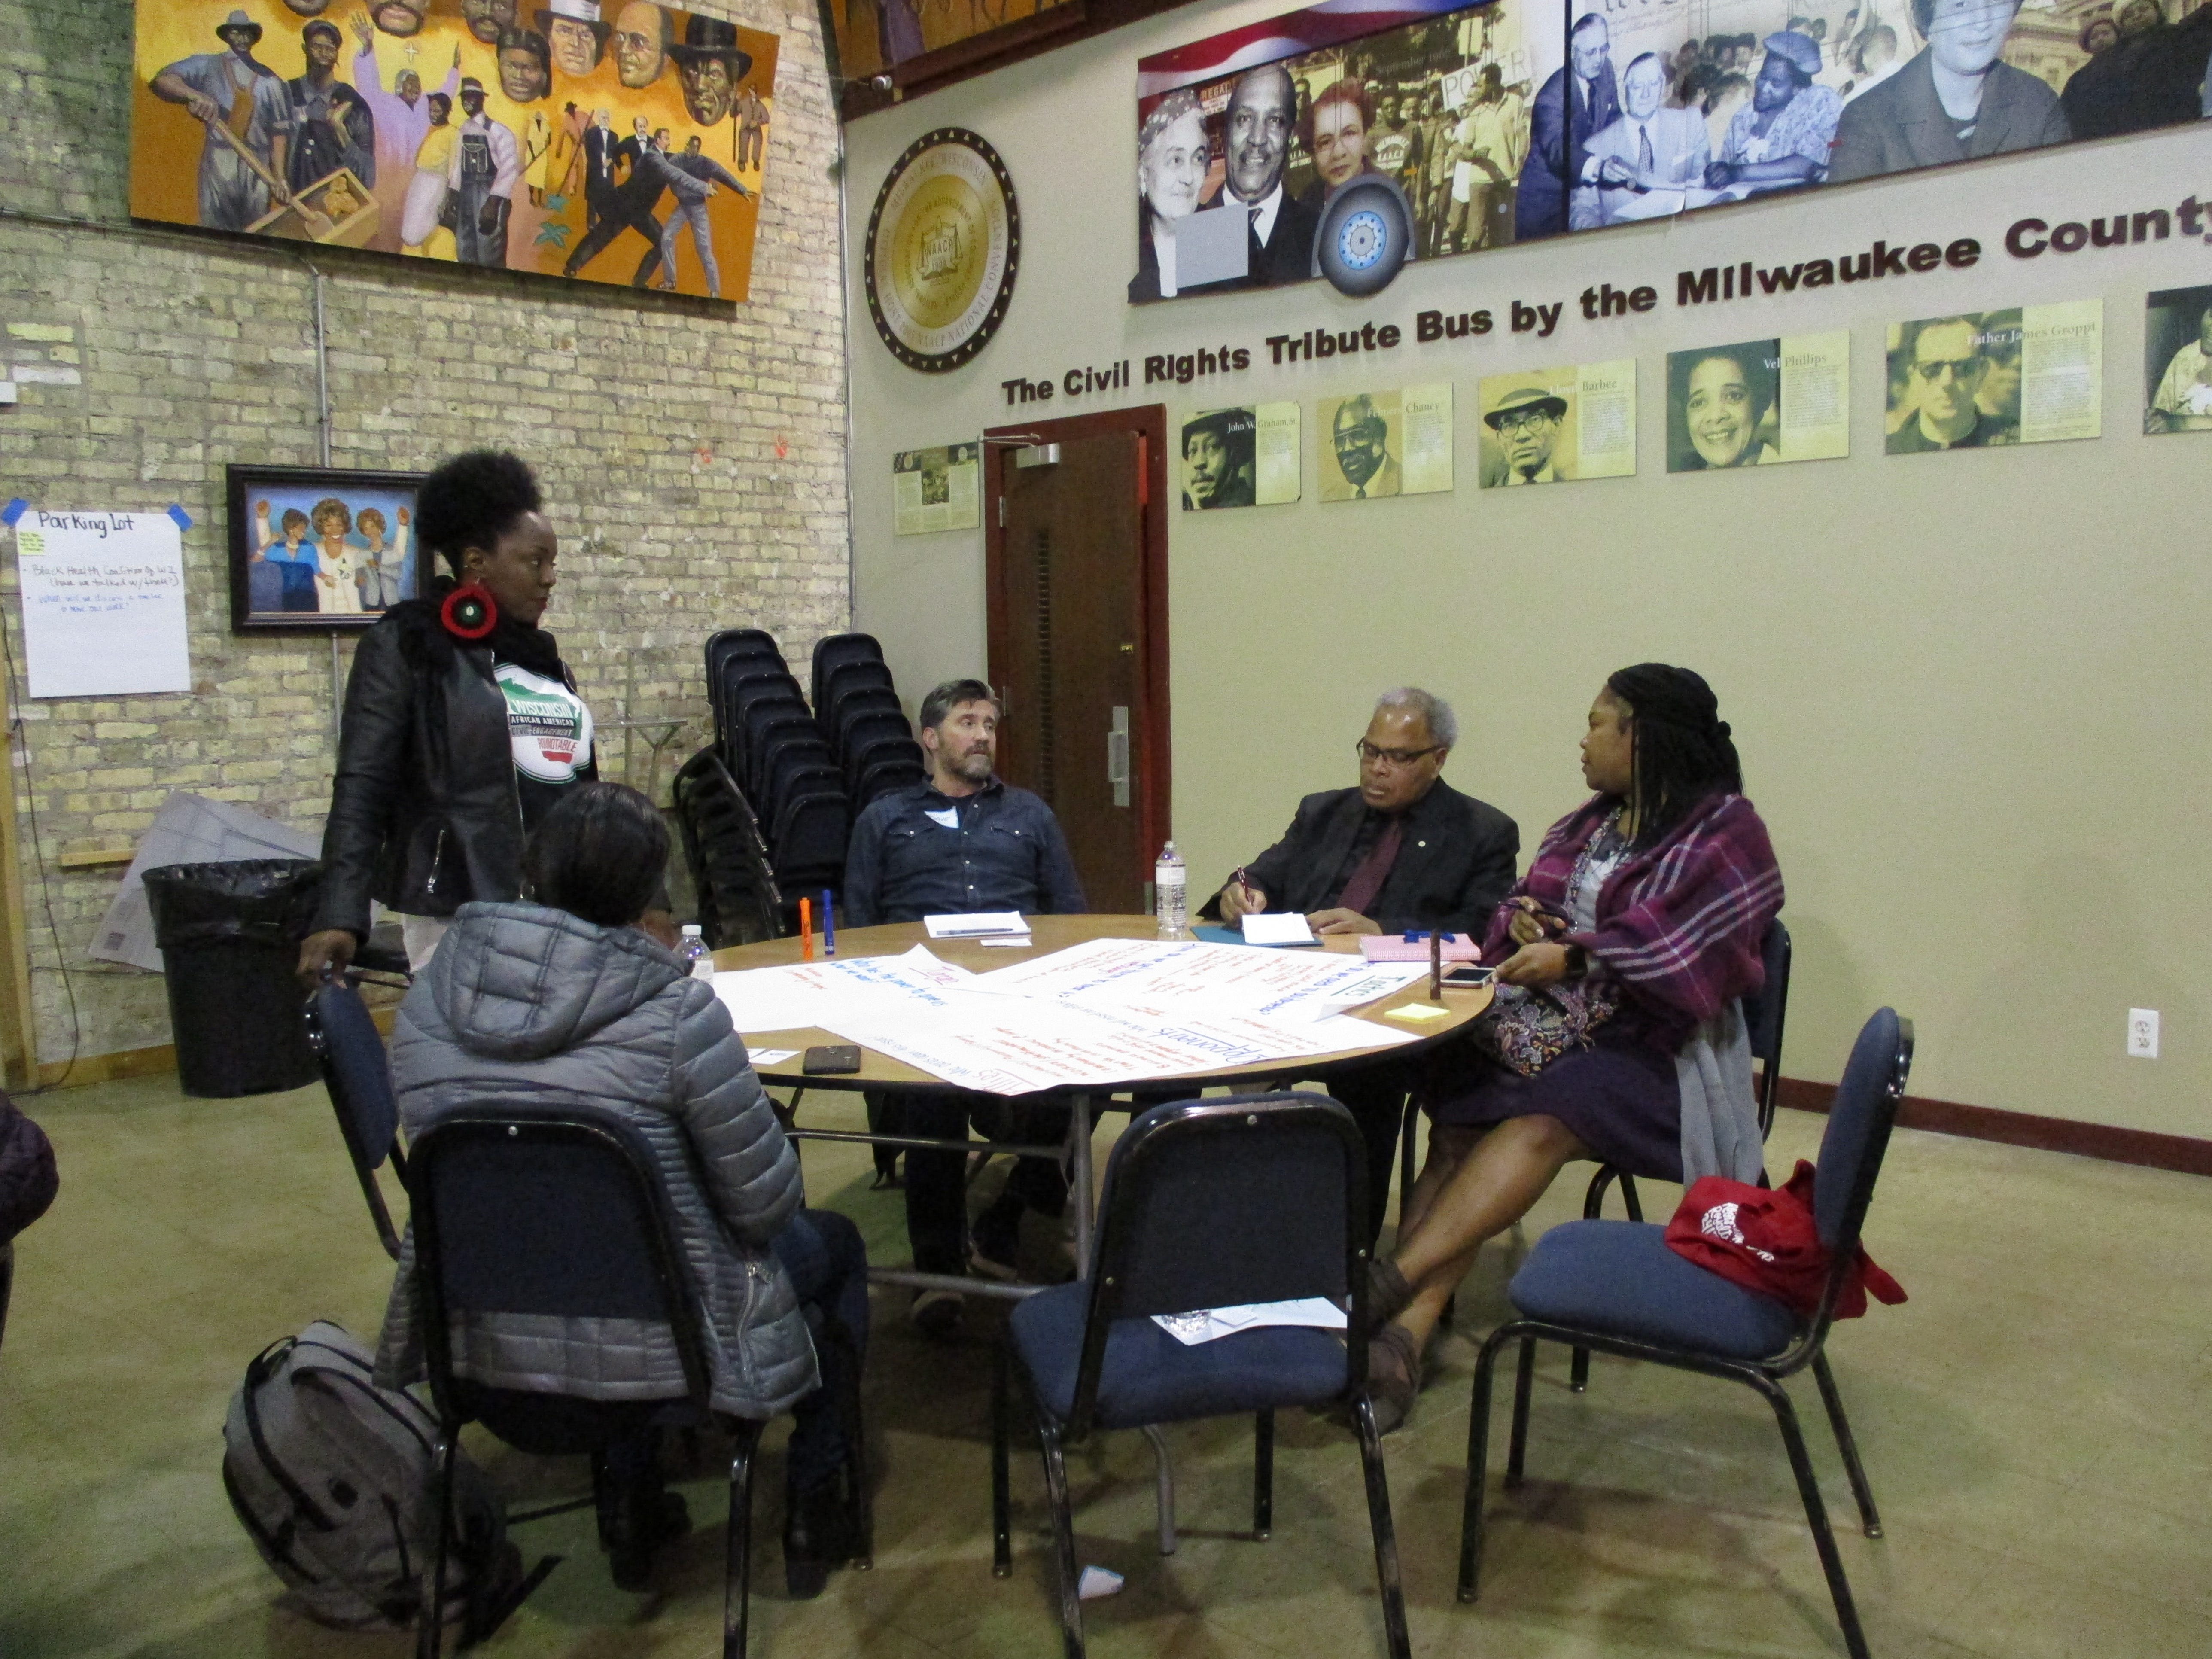 Activists and residents concerned about lack of communication from Ascension Wisconsin on St. Joseph hospital